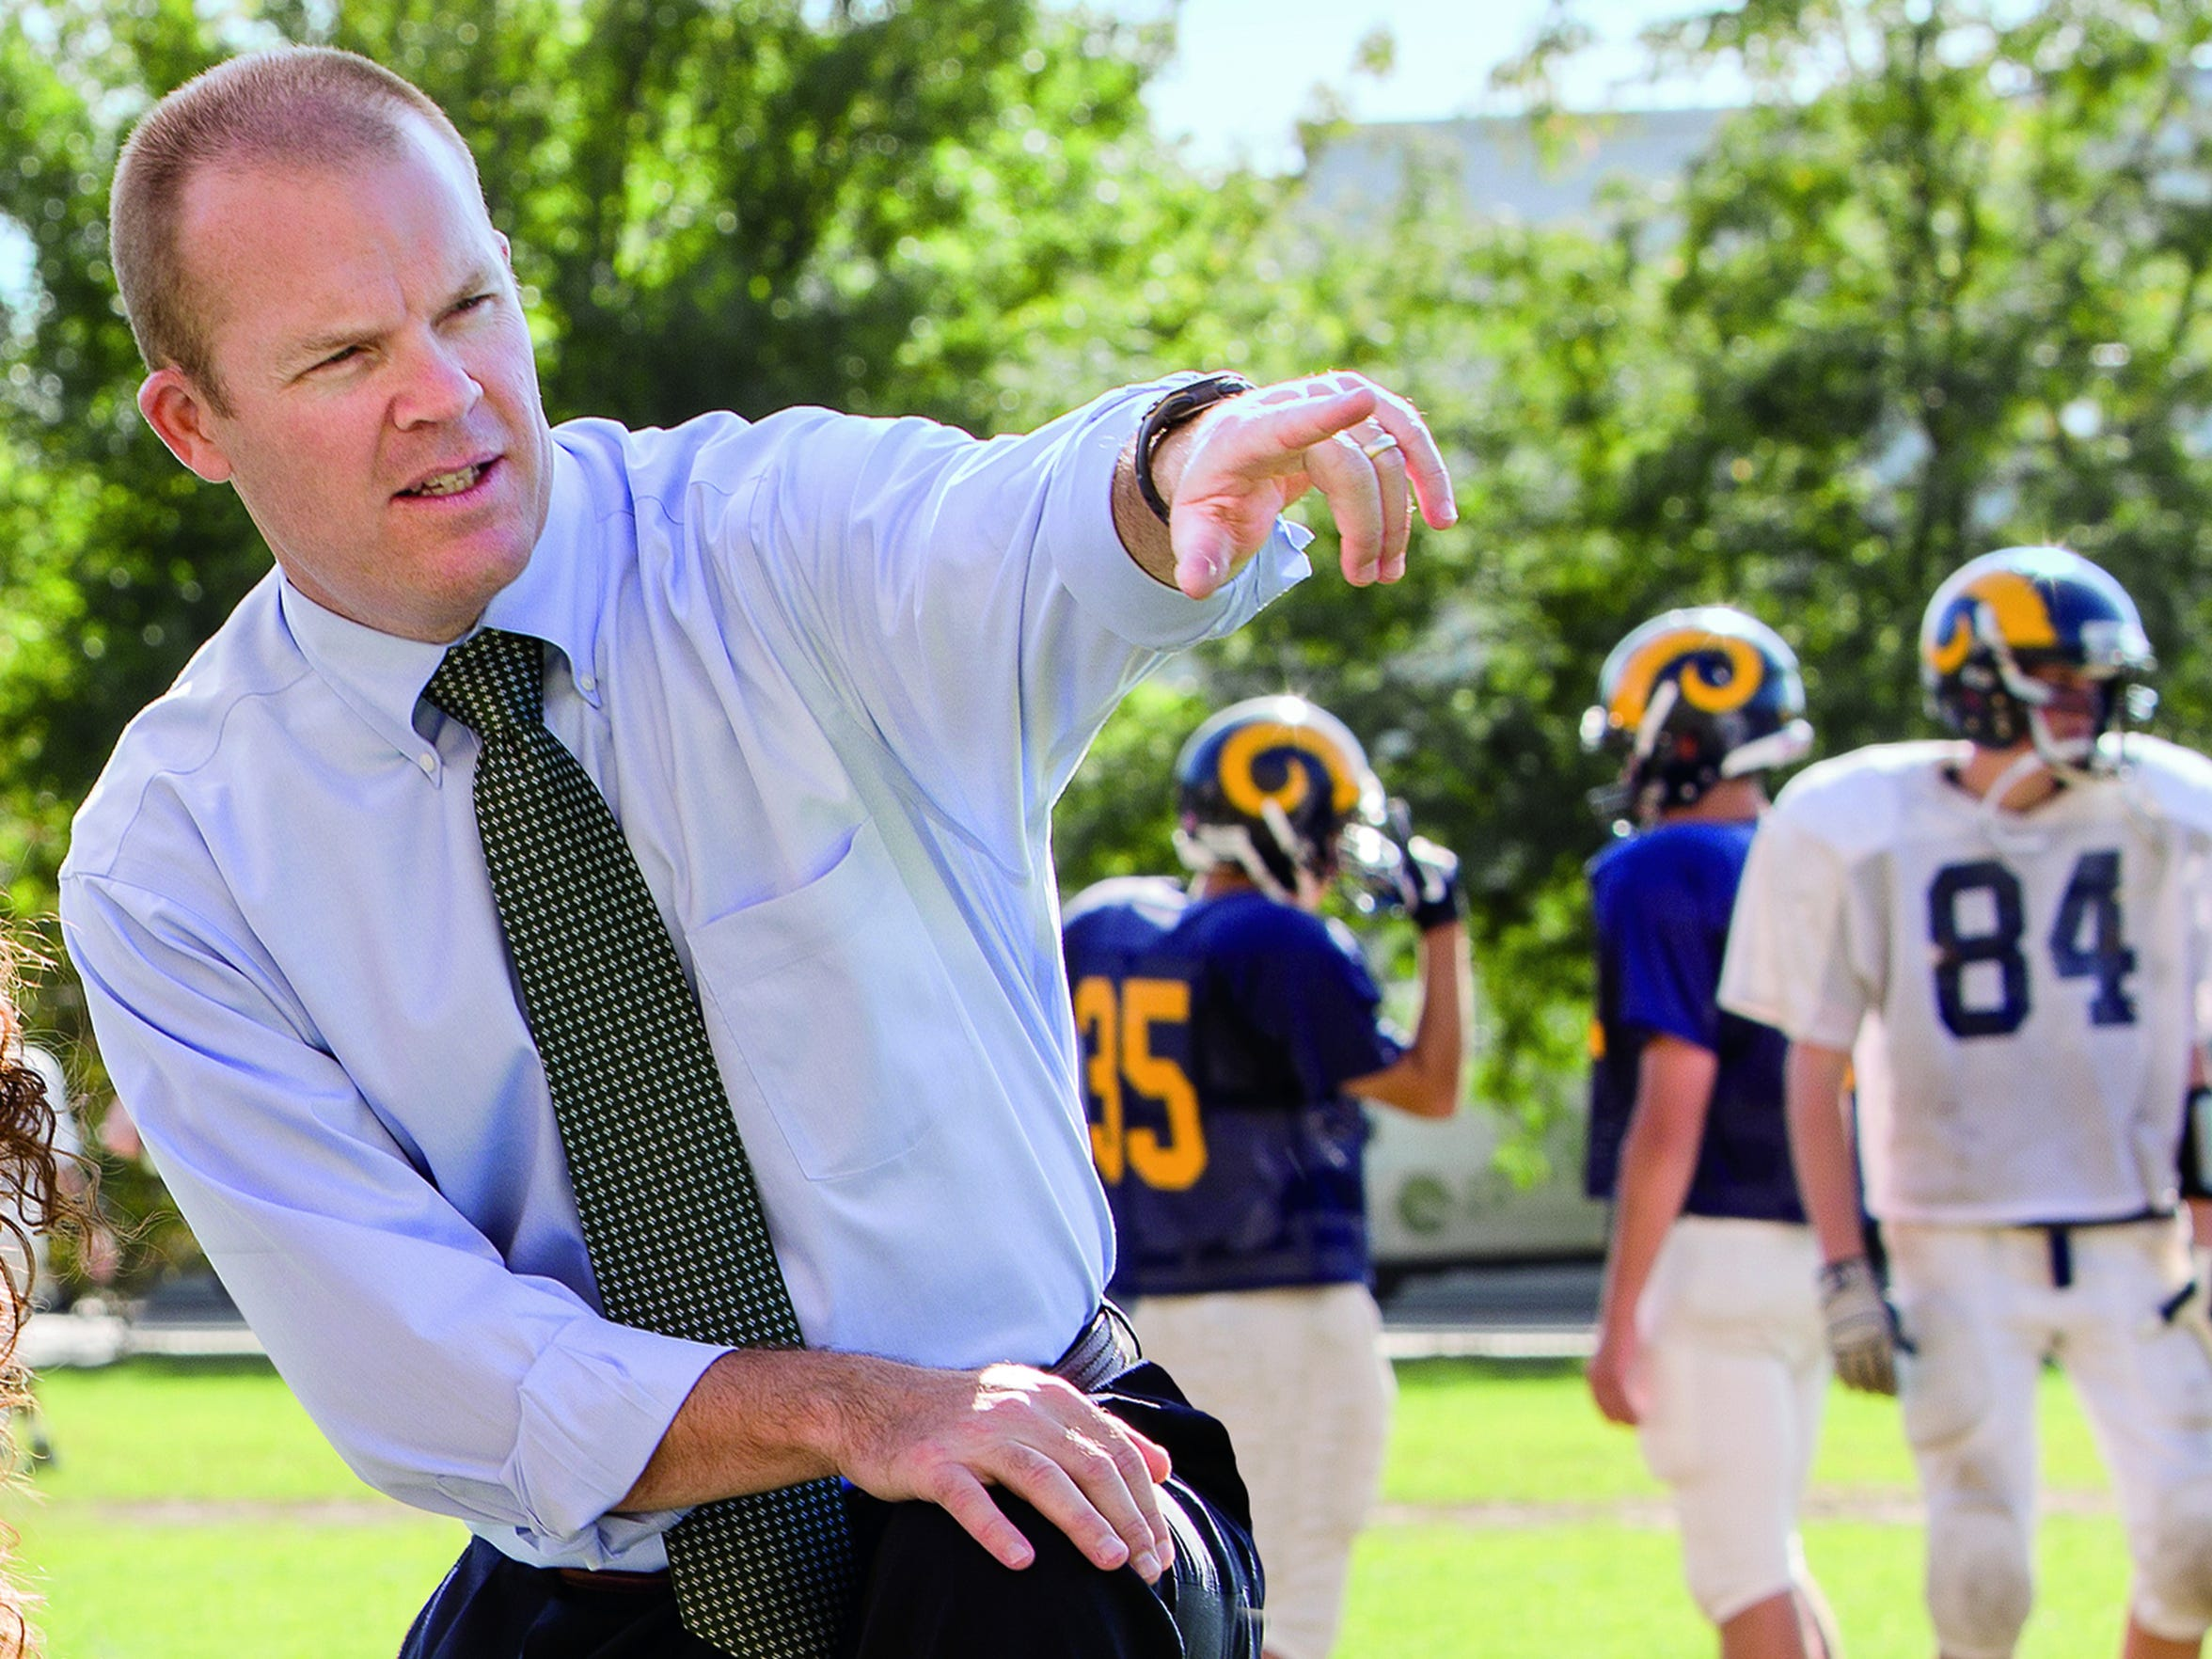 Dr. Michael McCrea, a professor and director of brain injury research at the Medical College of Wisconsin, is seen at Marquette University High School in 2012, the site of one of his previous research studies. McCrea is one of the principal investigators in a study of the effects of concussions on tens of thousands of NCAA athletes and military cadets.